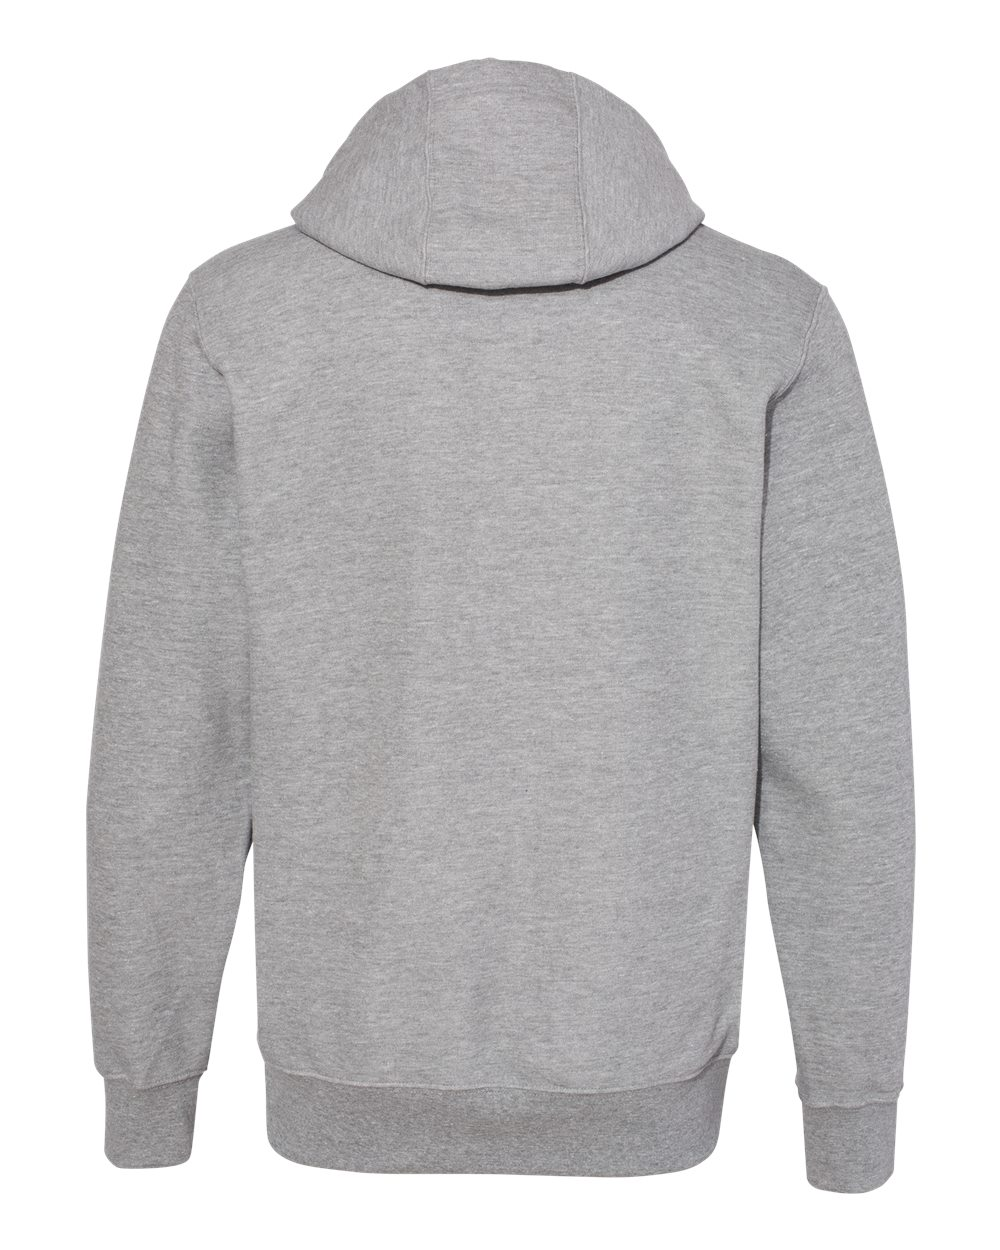 Russell-Athletic-Mens-Cotton-Rich-Fleece-Hooded-Sweatshirt-82ONSM-up-to-3XL miniature 16